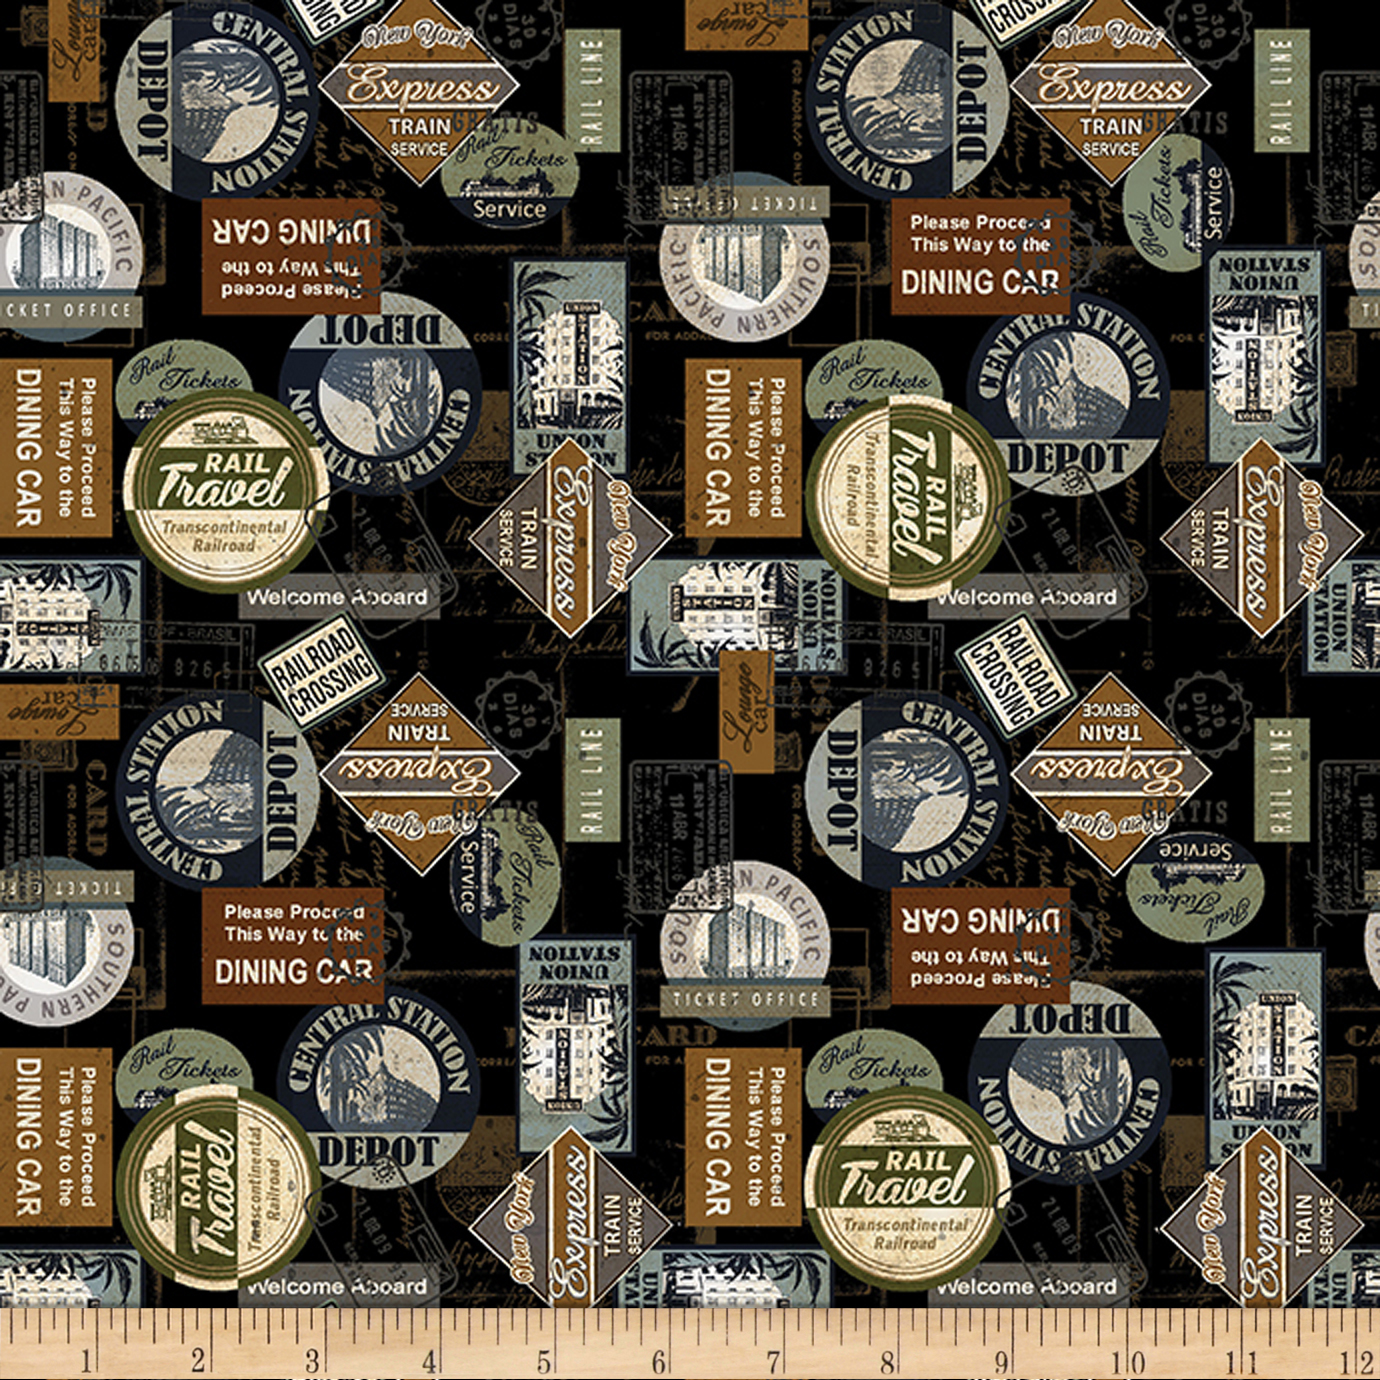 Vintage Inspired Halloween Costumes Kanvas Railway Express Station Stamps Black Fabric $9.48 AT vintagedancer.com